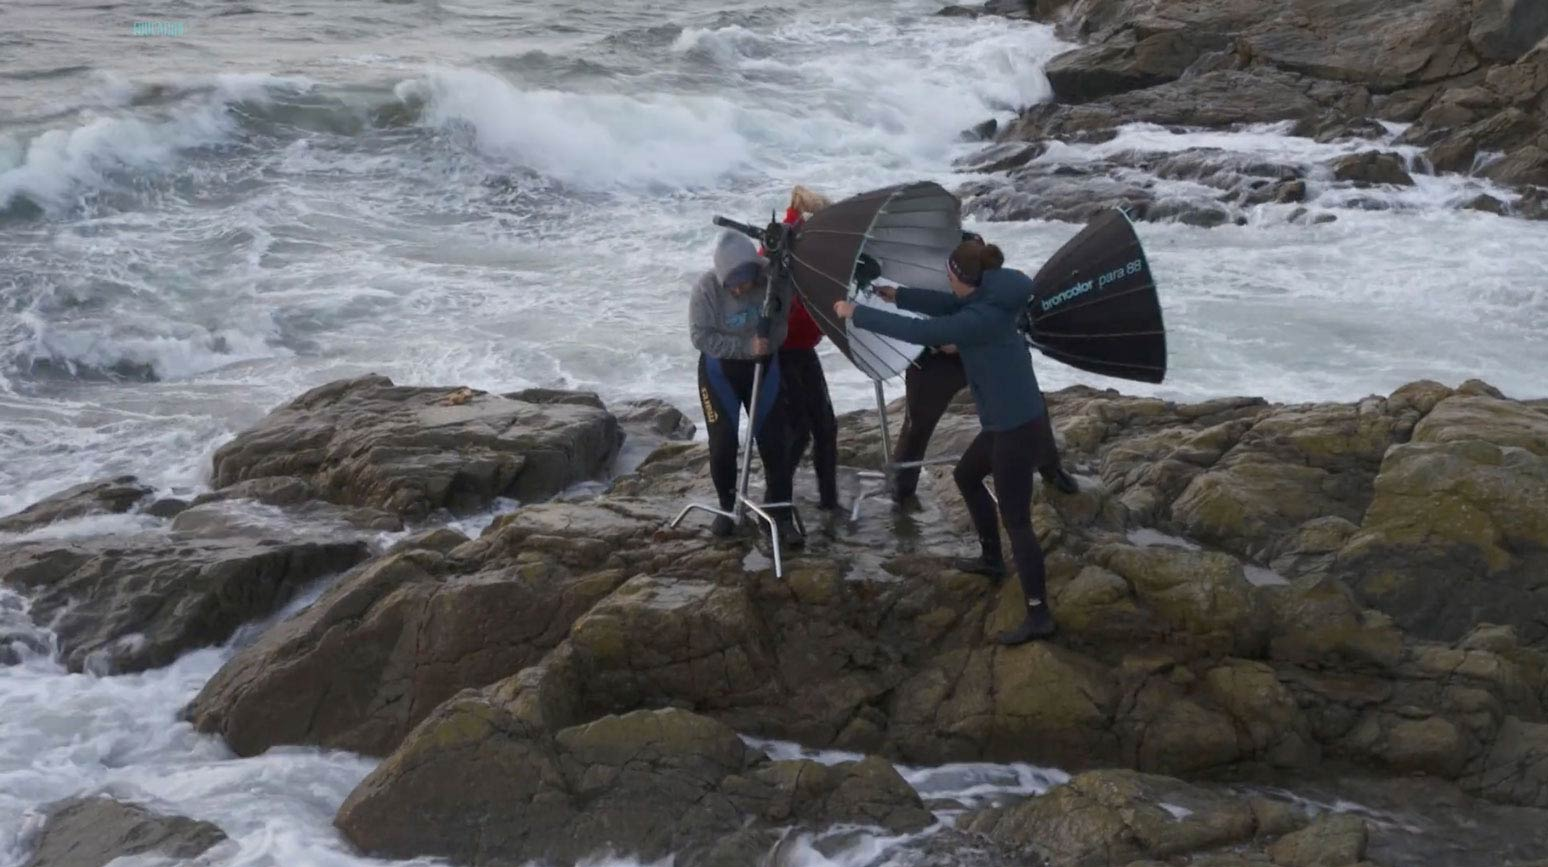 Photographer's assistants on a rocky outcrop